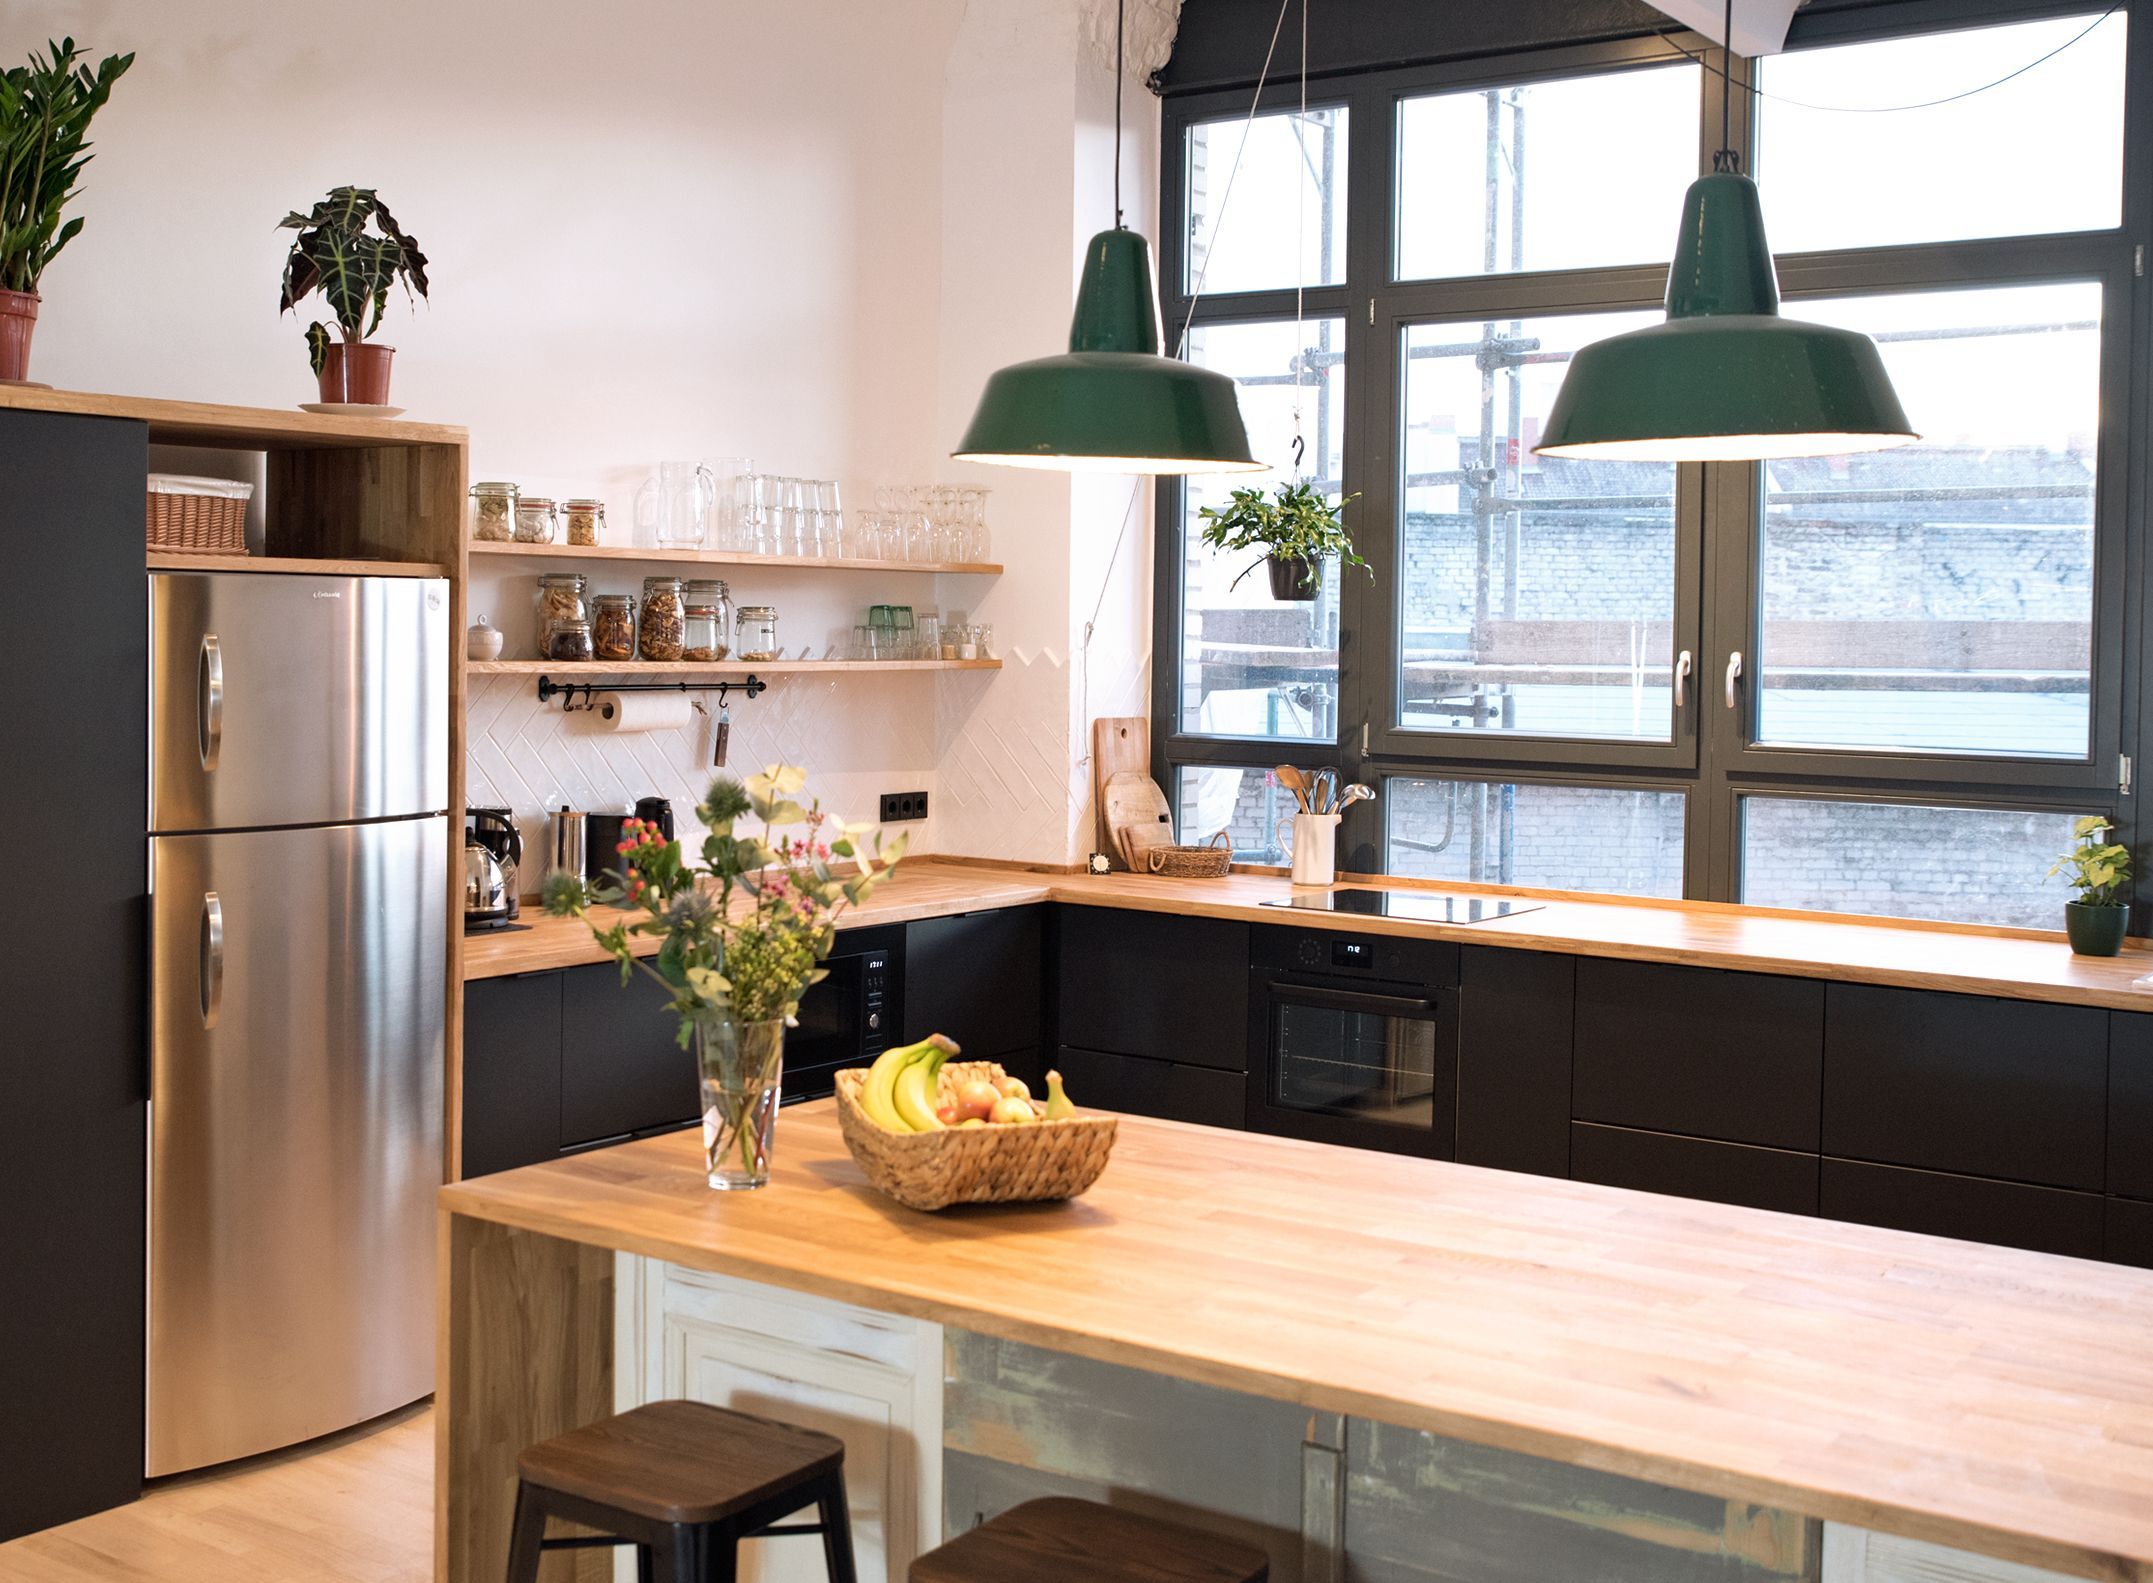 The cosy café style office kitchen with oak counters and industrial lamps